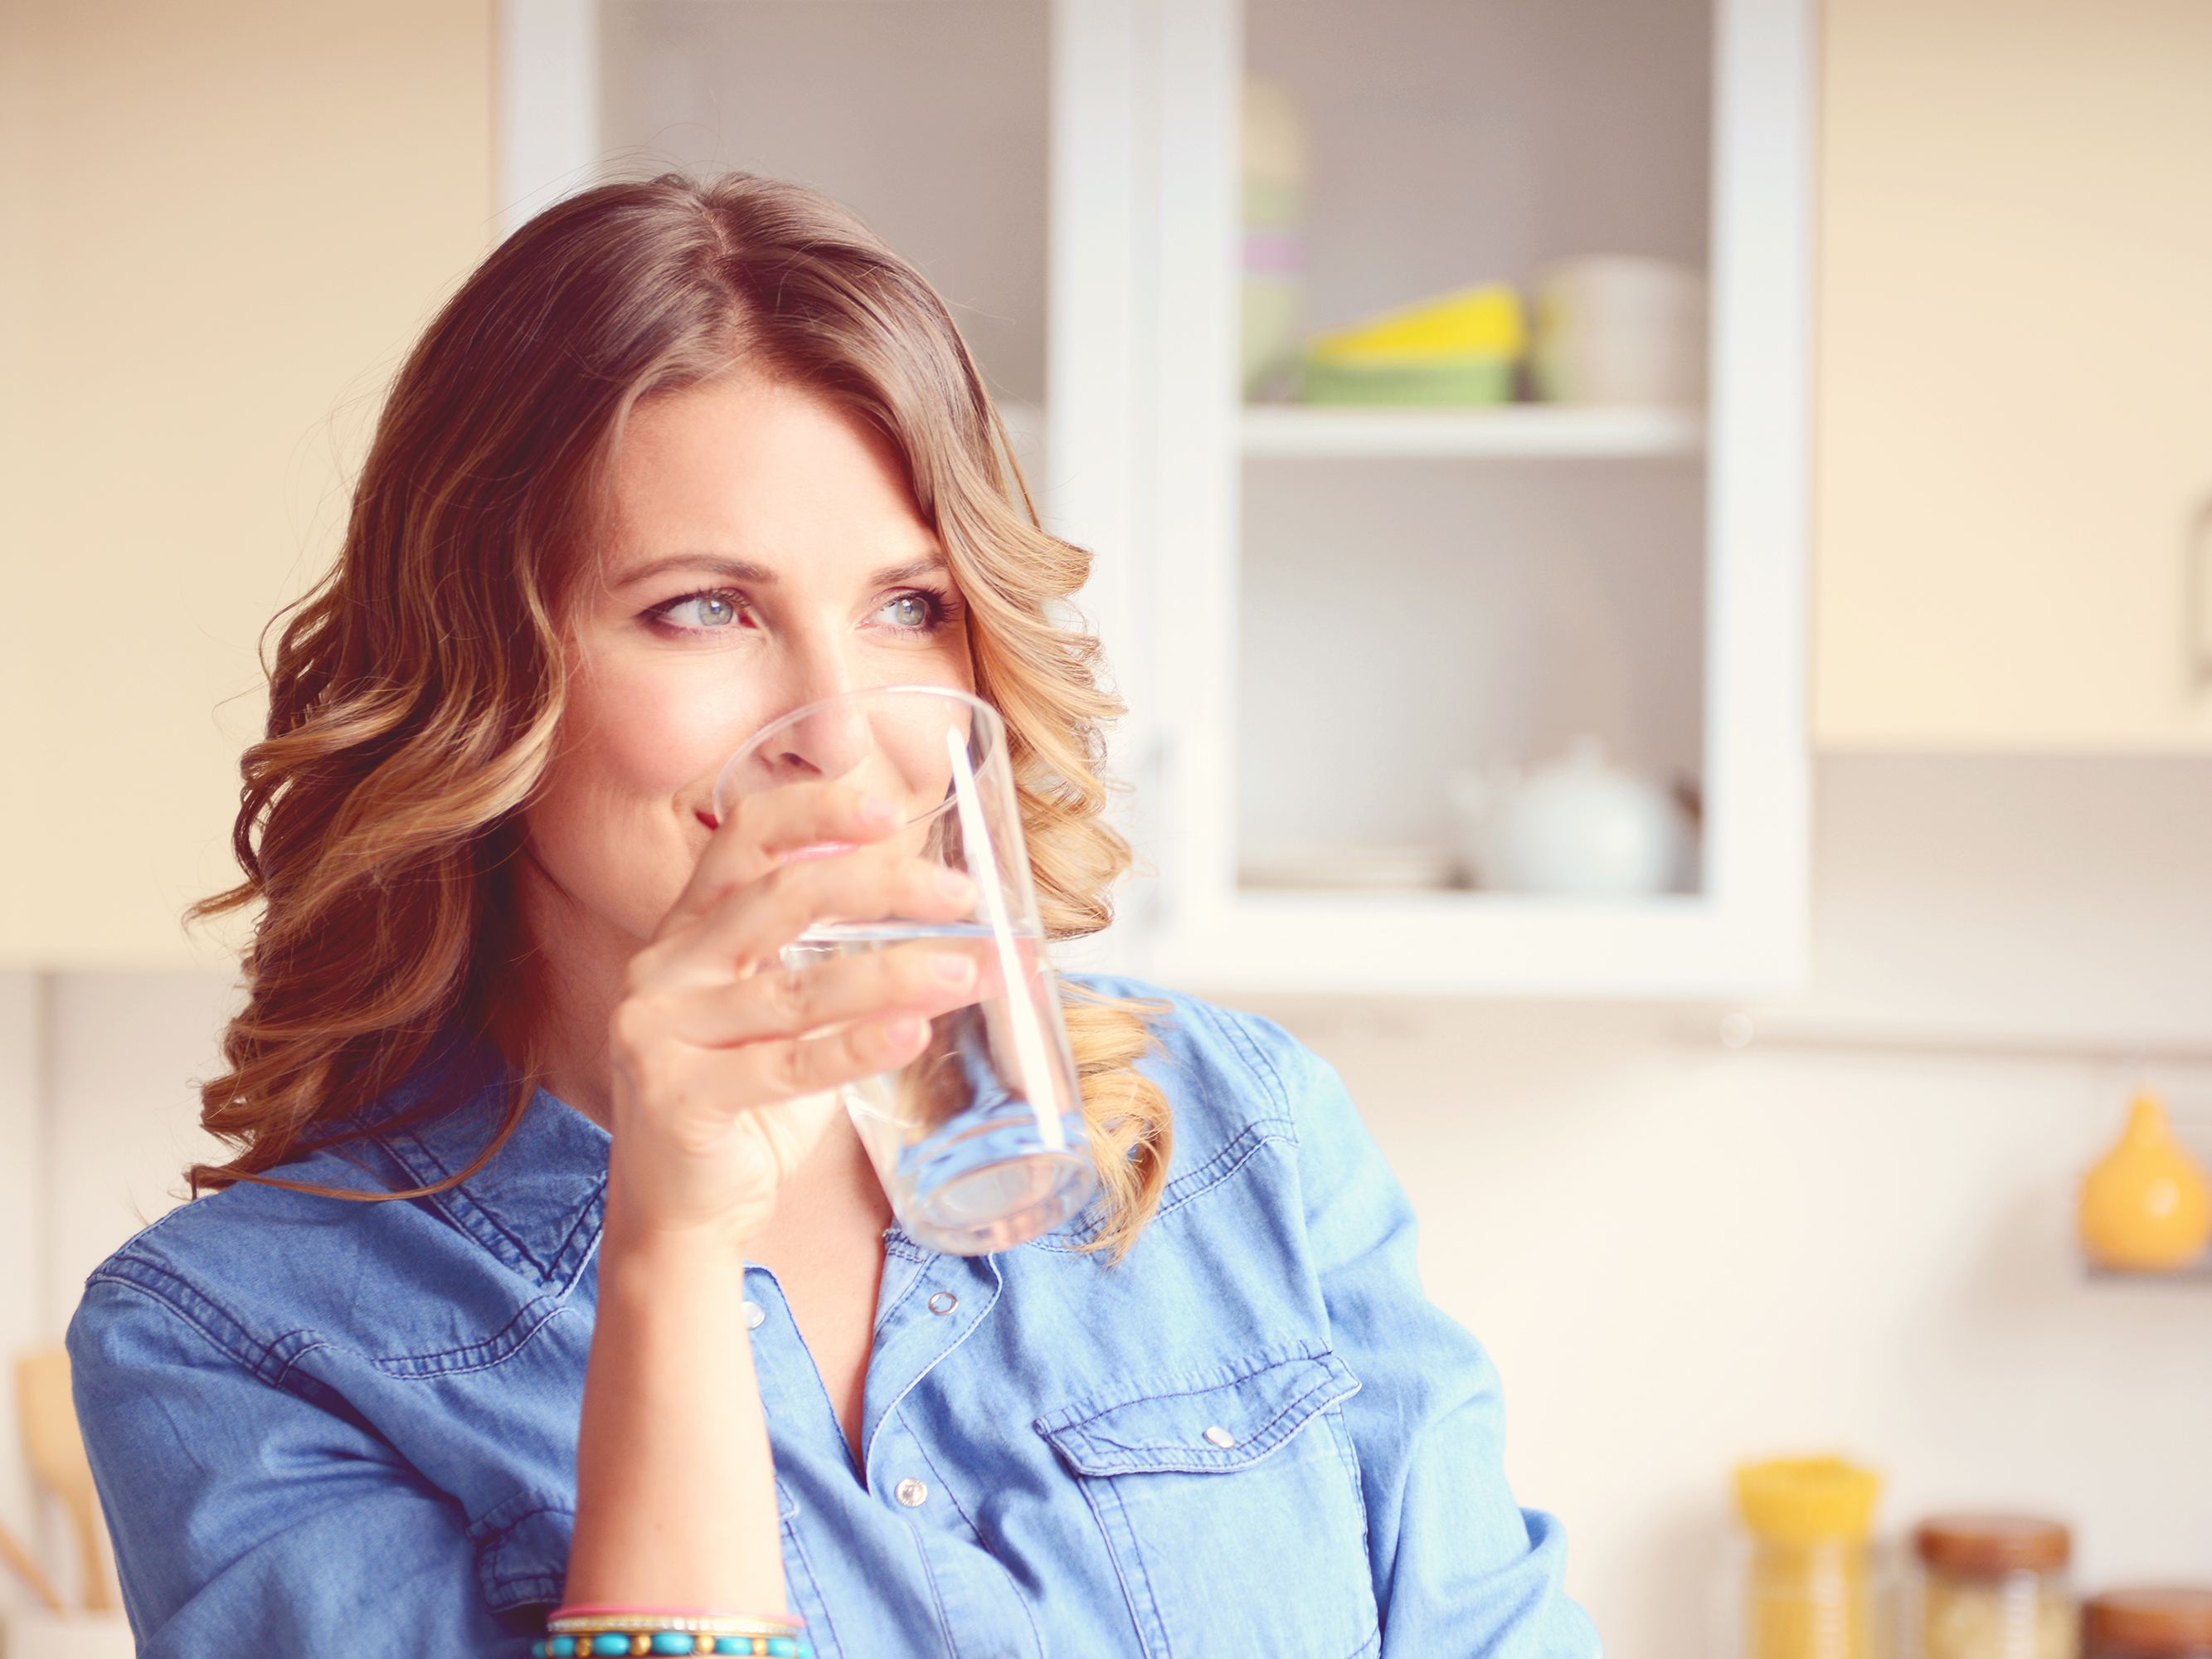 woman drinking tap water